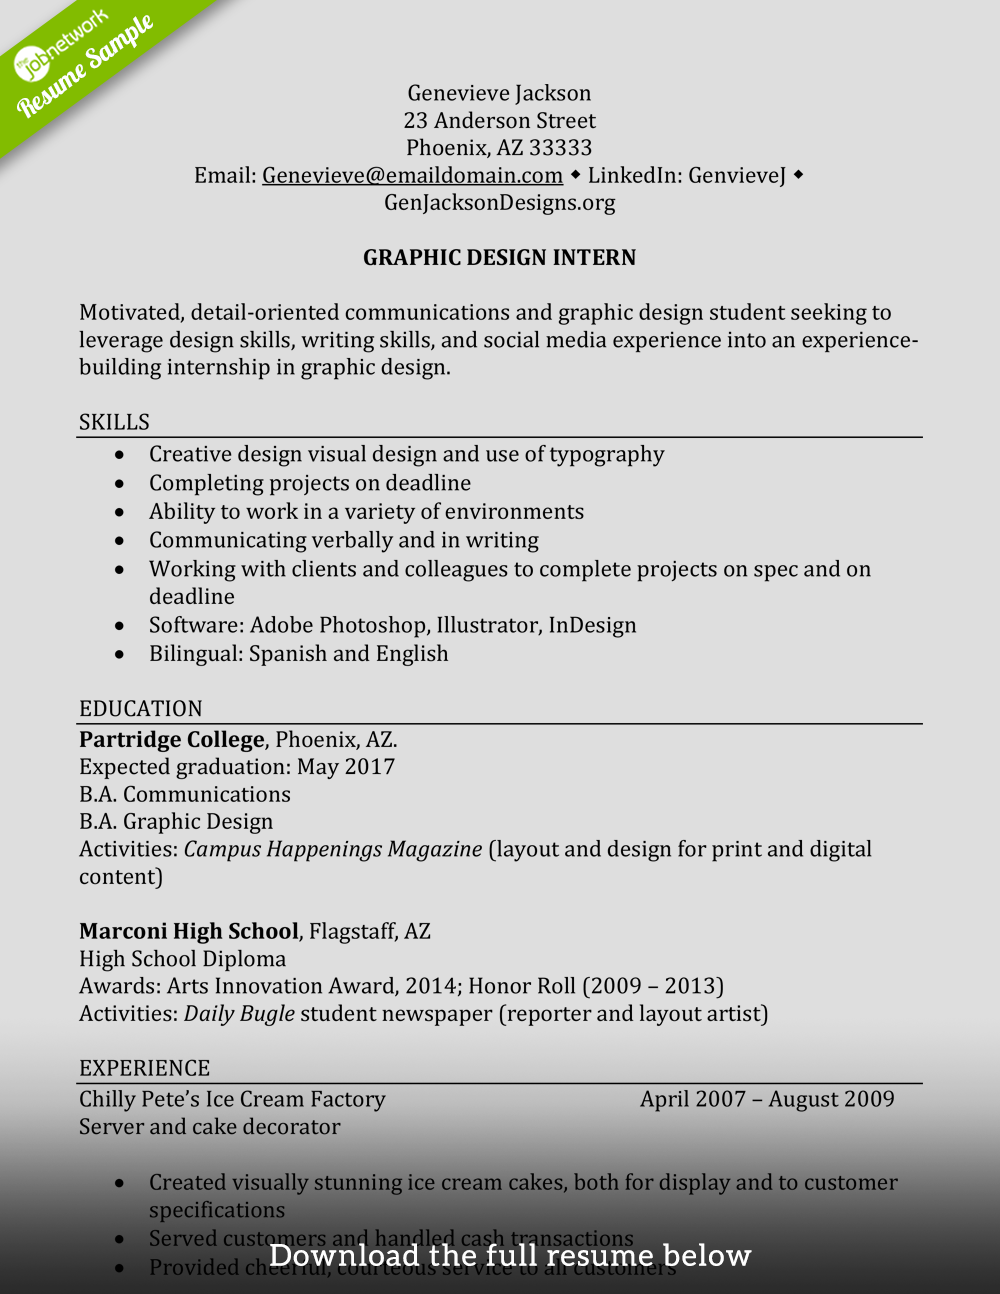 College Student Resume For Internship from tjn-blog-images.s3.amazonaws.com